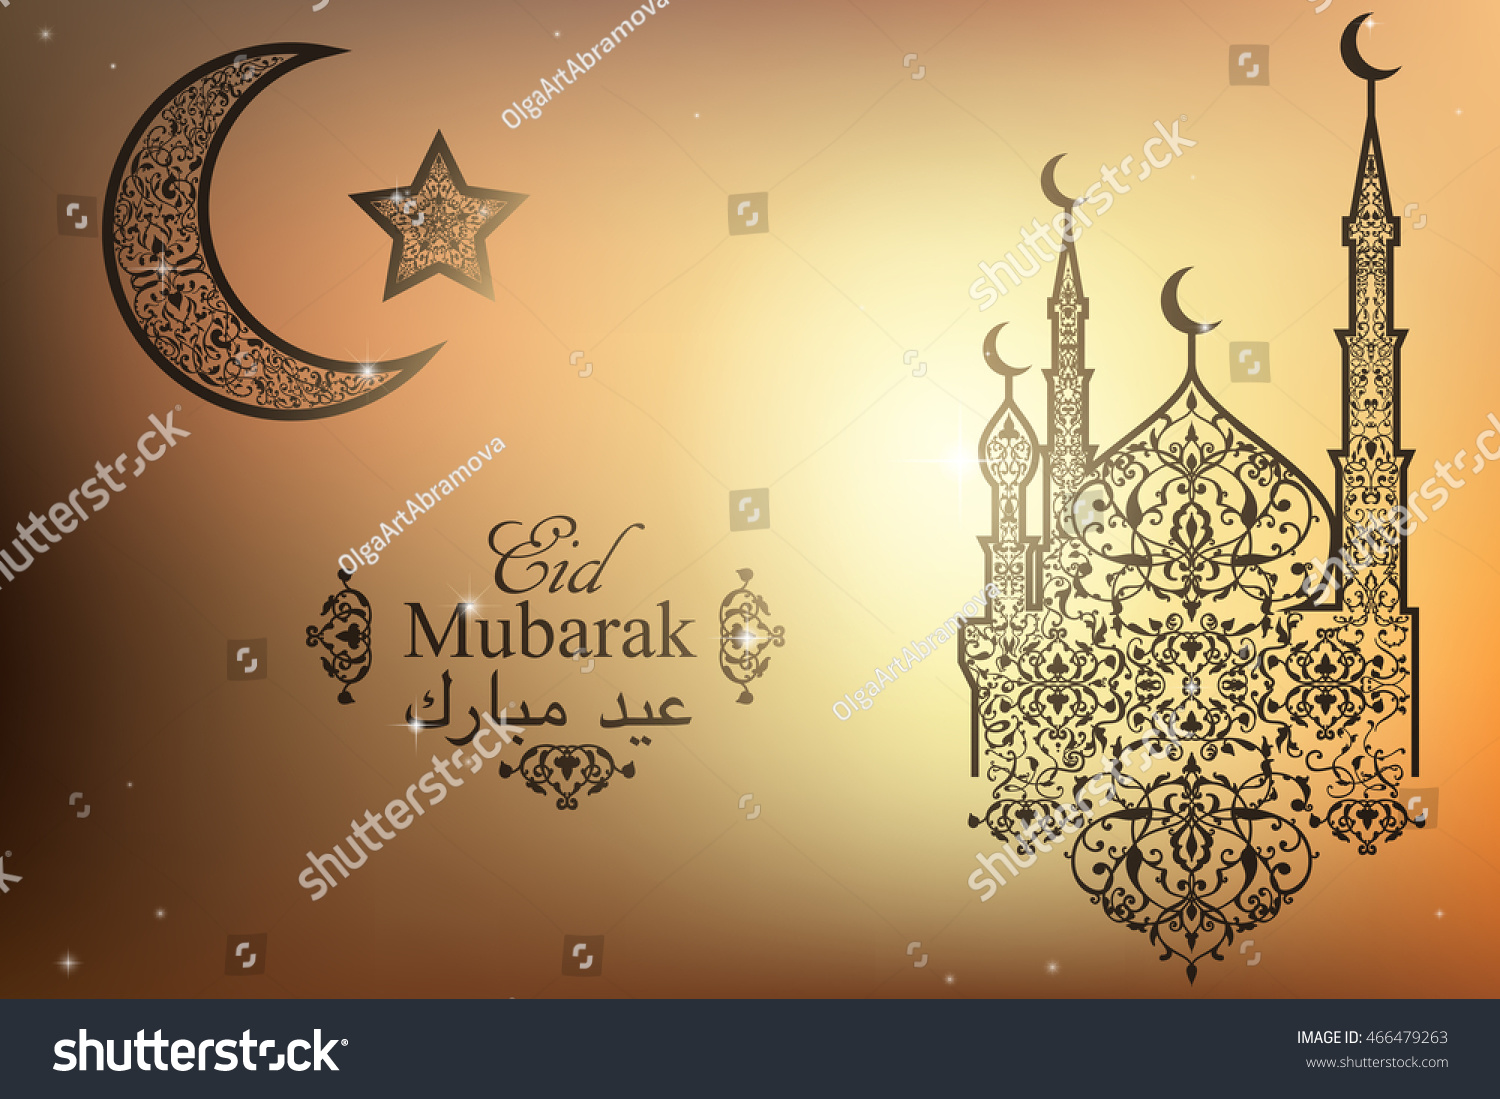 Royalty free stock illustration of english translation eid mubarak english translation eid mubarak greeting on blurred background with beautiful illuminated arabic lamp greeting card m4hsunfo